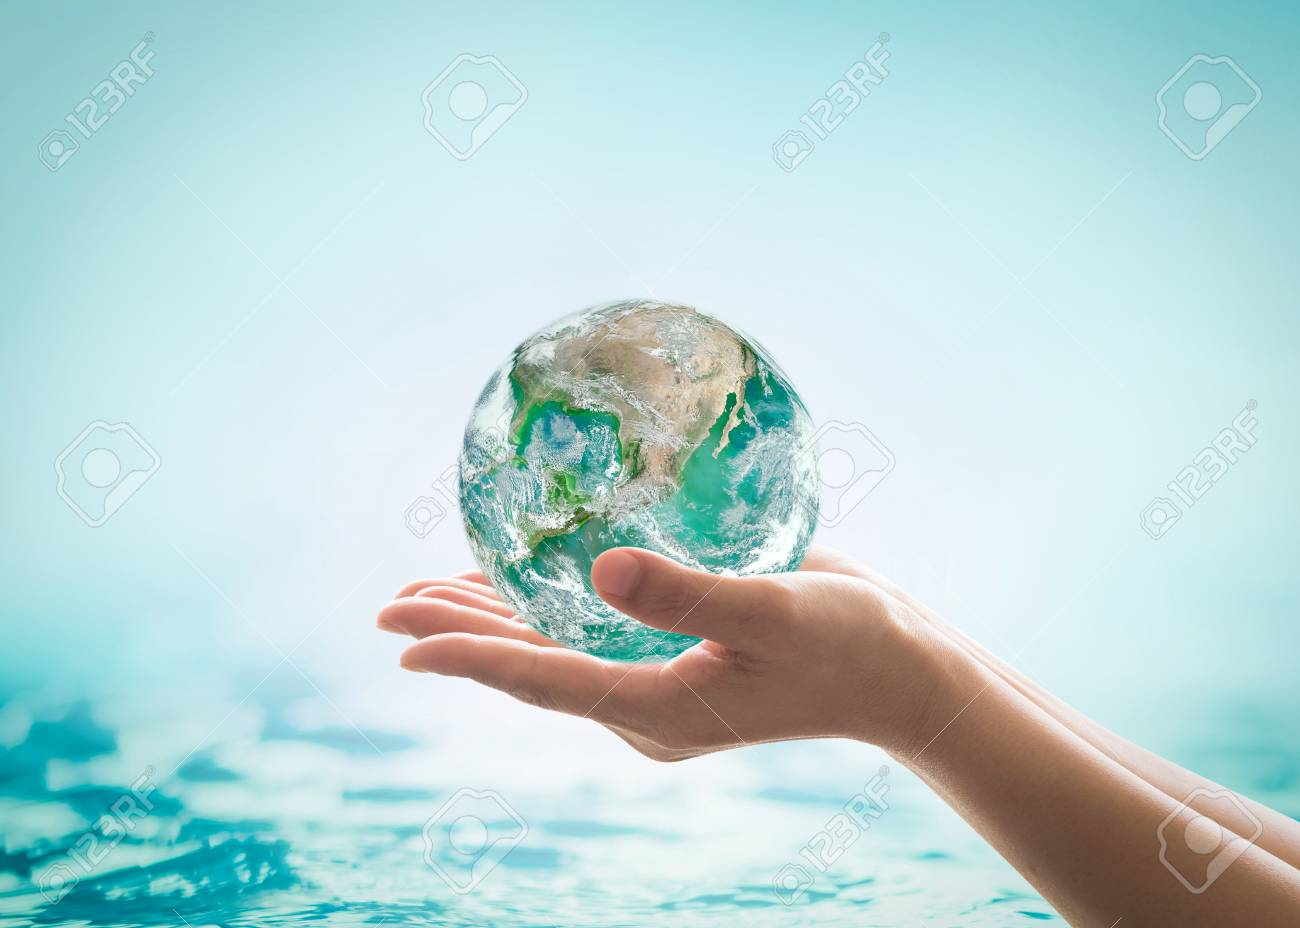 World ocean day, saving water campaign, sustainable ecological ecosystems concept with green earth on woman's hands on blue sea background - 112436671